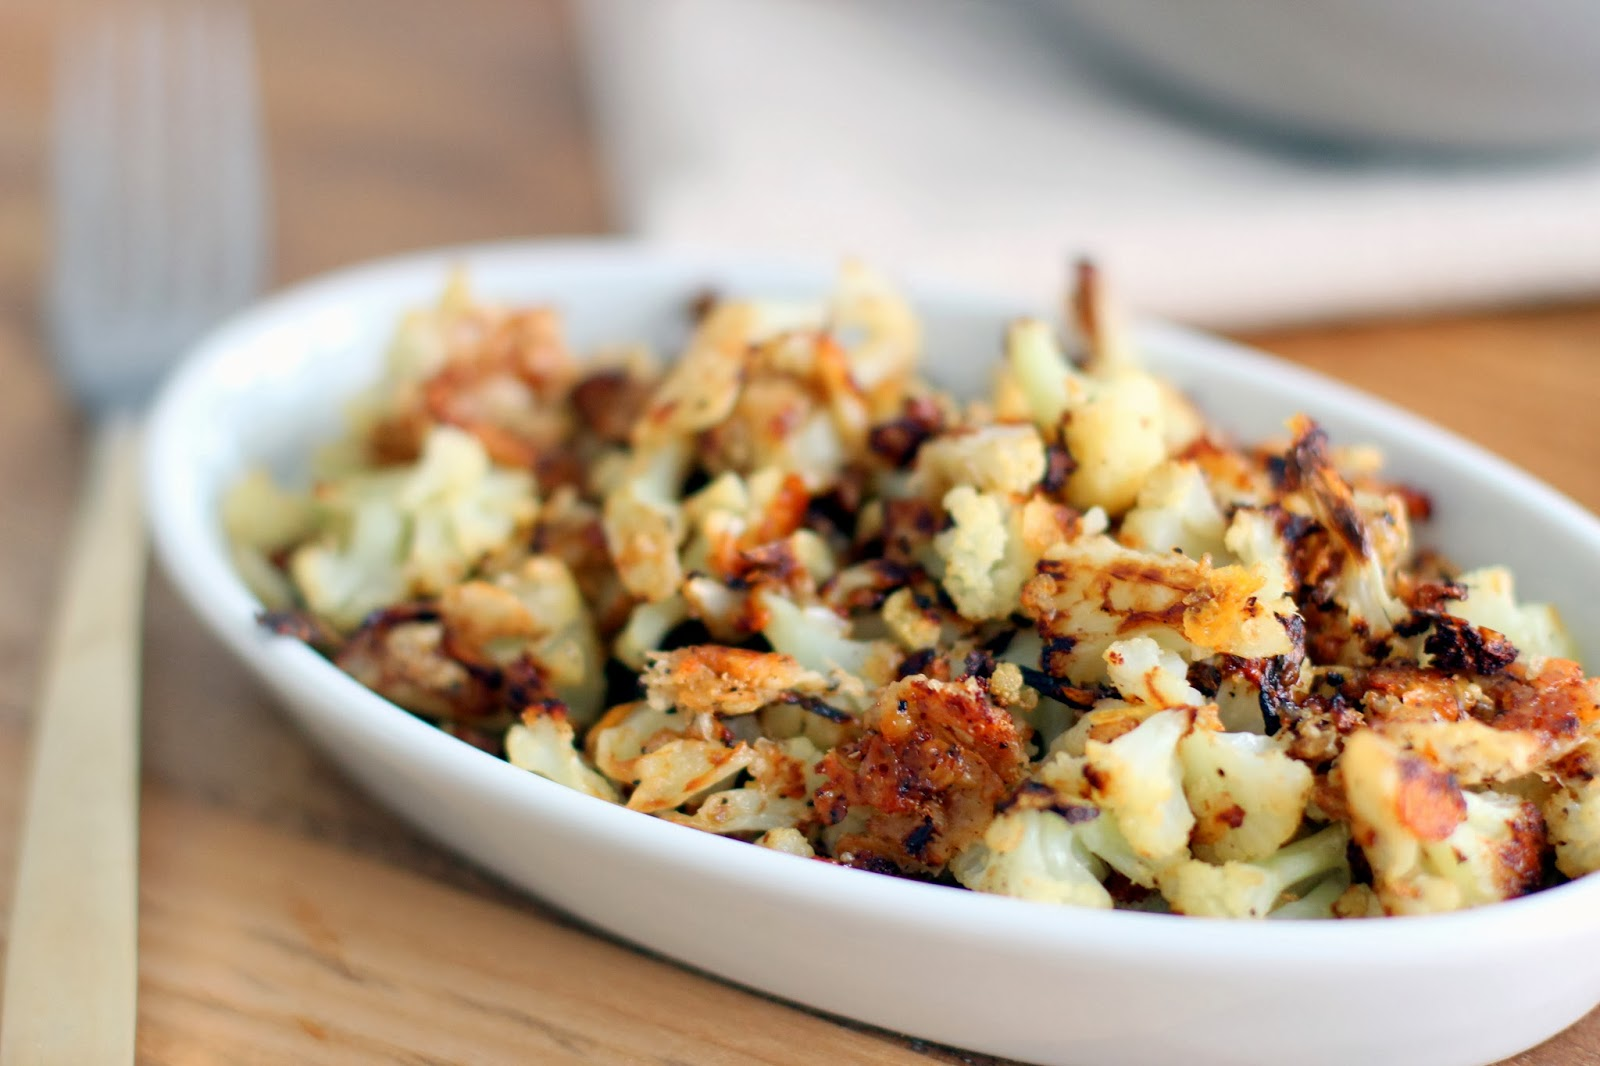 The Owl with the Goblet: Parmesan Roasted Cauliflower